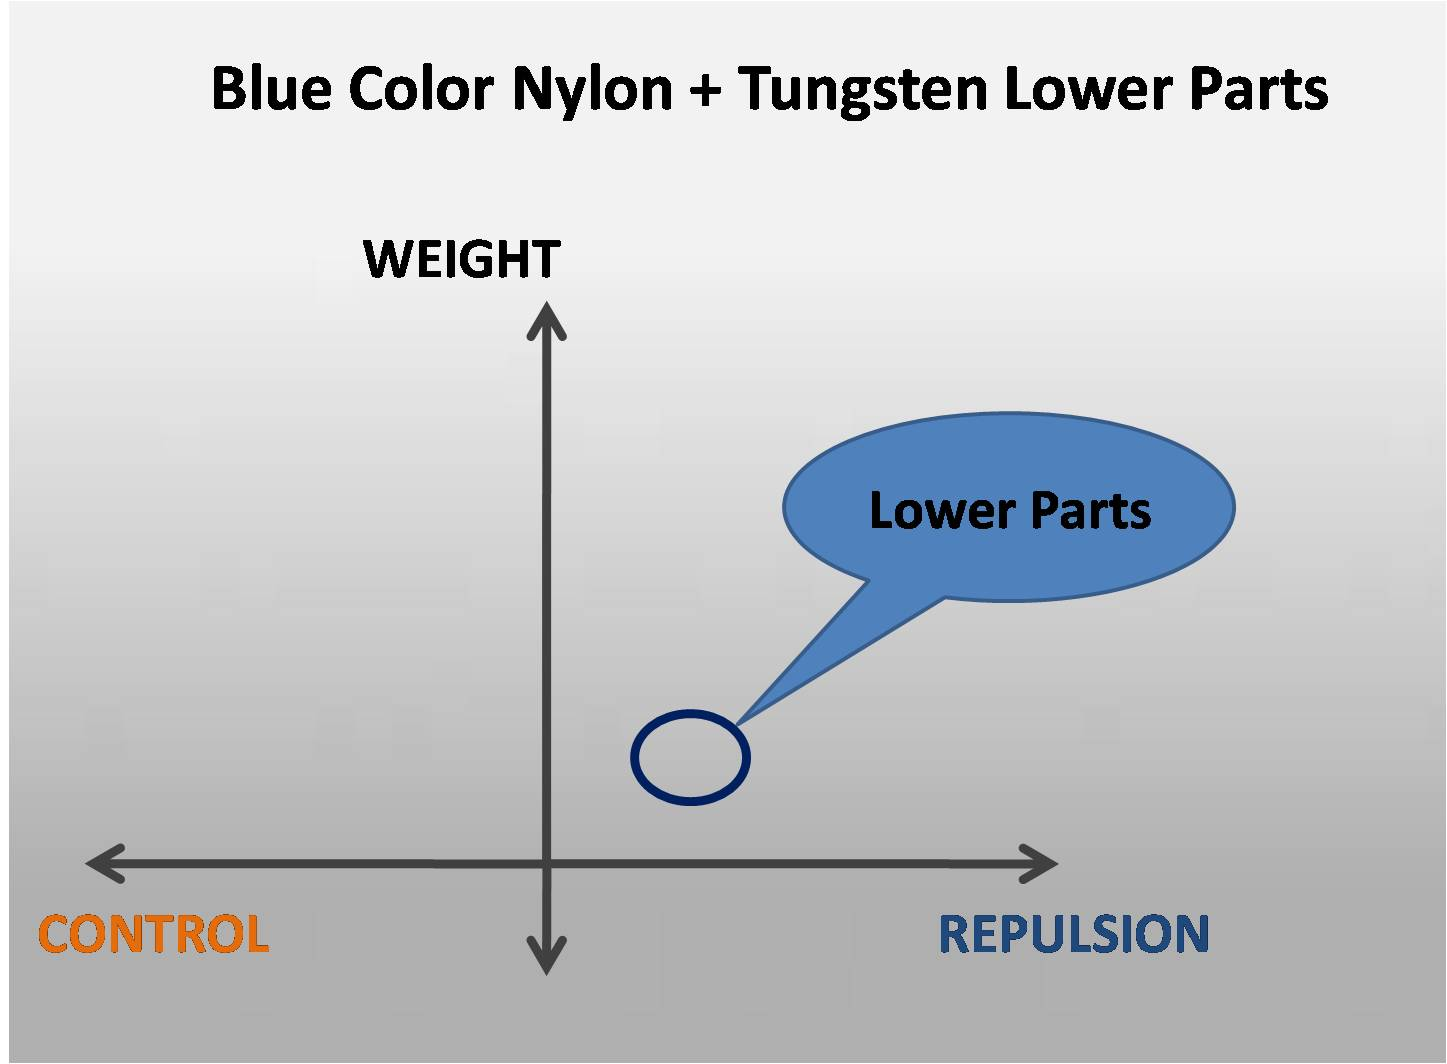 Blue Color Nylon + Tungsten Lower Parts